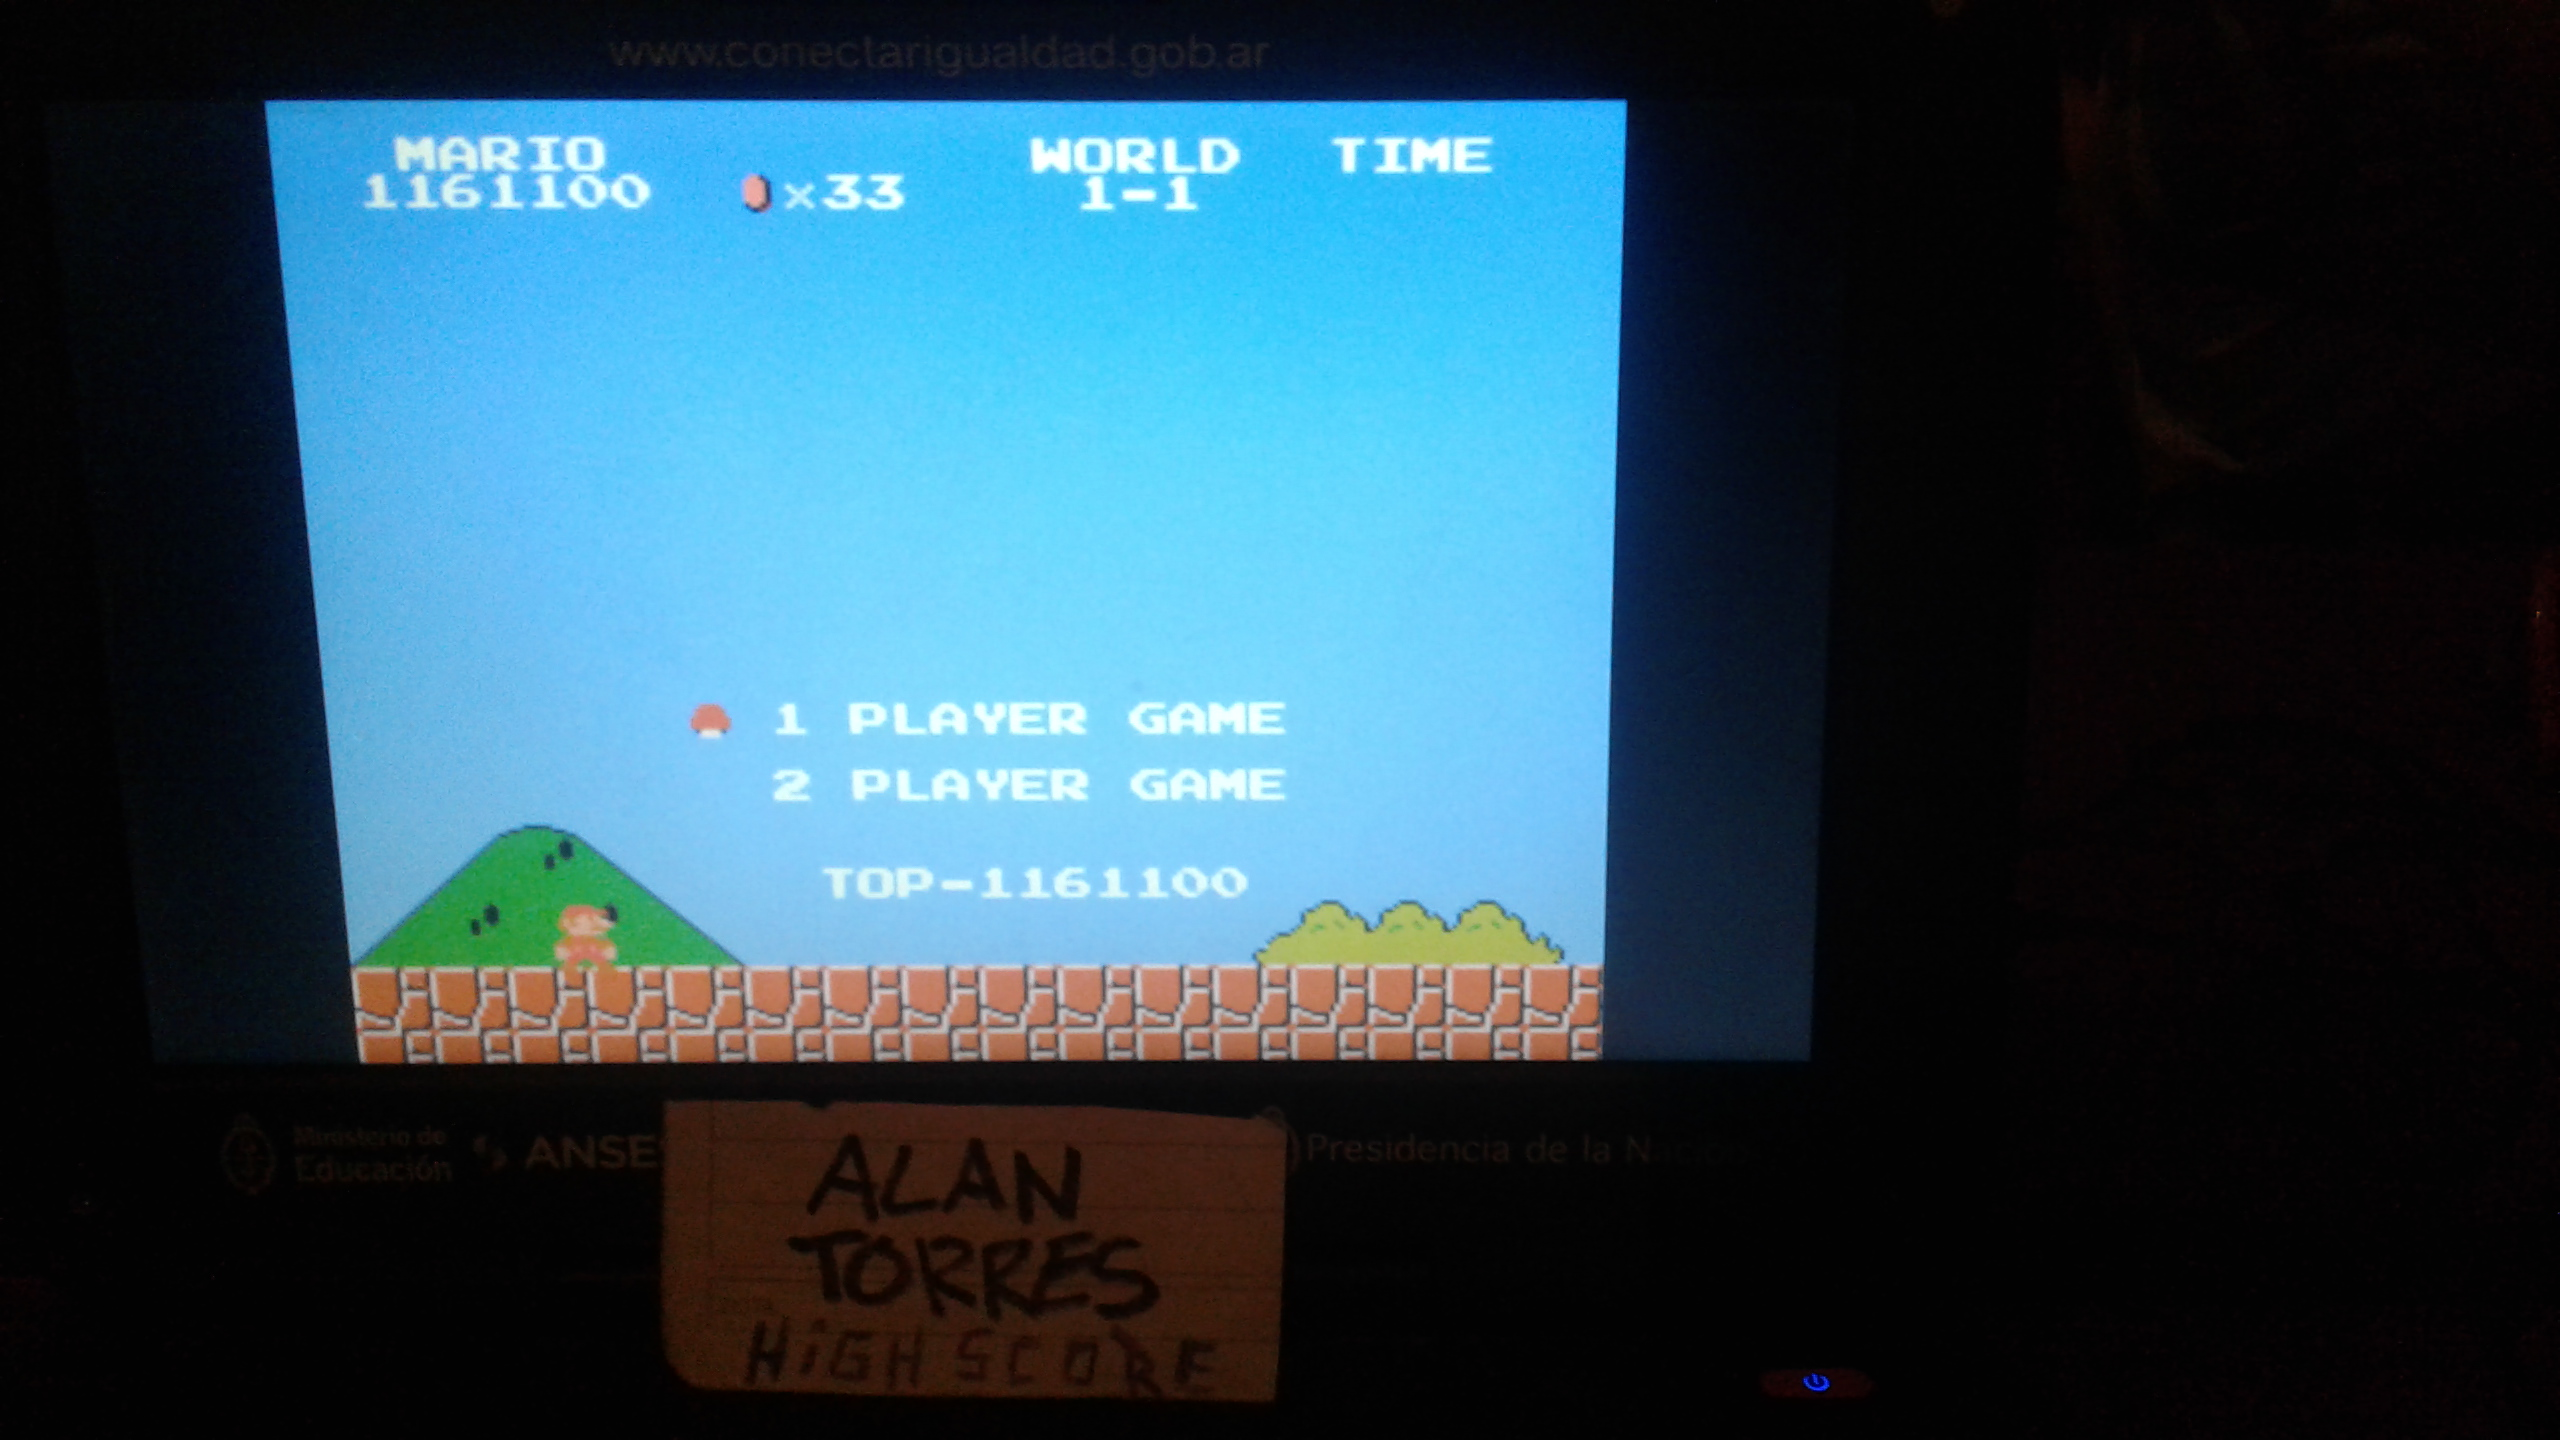 AlanTorres: Super Mario Bros. (NES/Famicom Emulated) 1,161,100 points on 2017-10-18 16:20:33